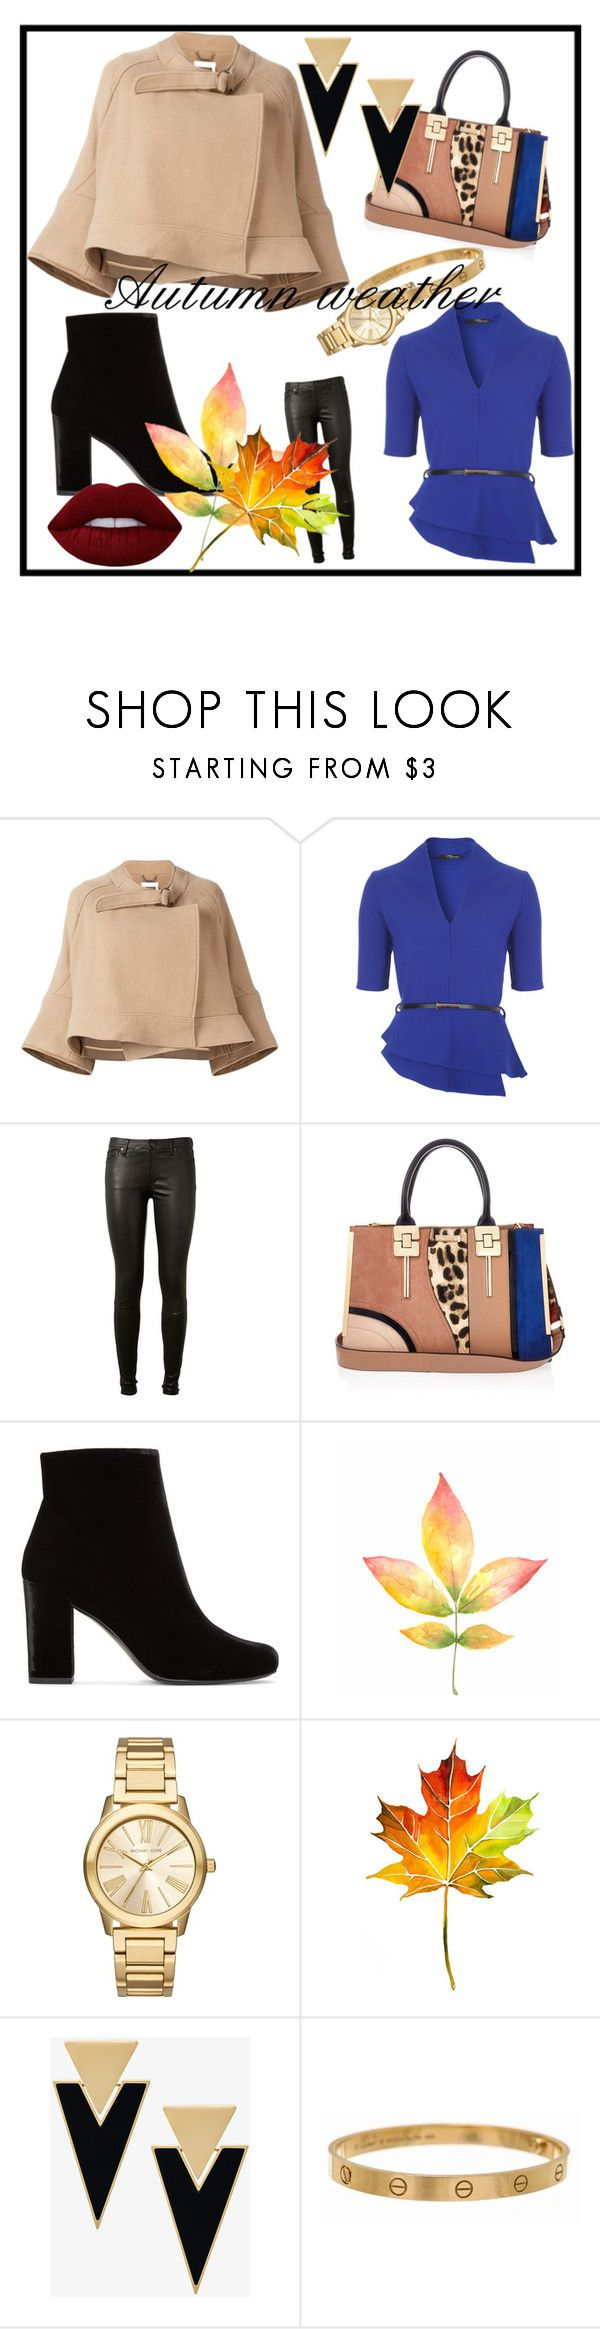 """Untitled #215"" by frupapp on Polyvore featuring Chloé, AG Adriano Goldschmied, River Island, Yves Saint Laurent, Michael Kors, Cartier and Lime Crime"